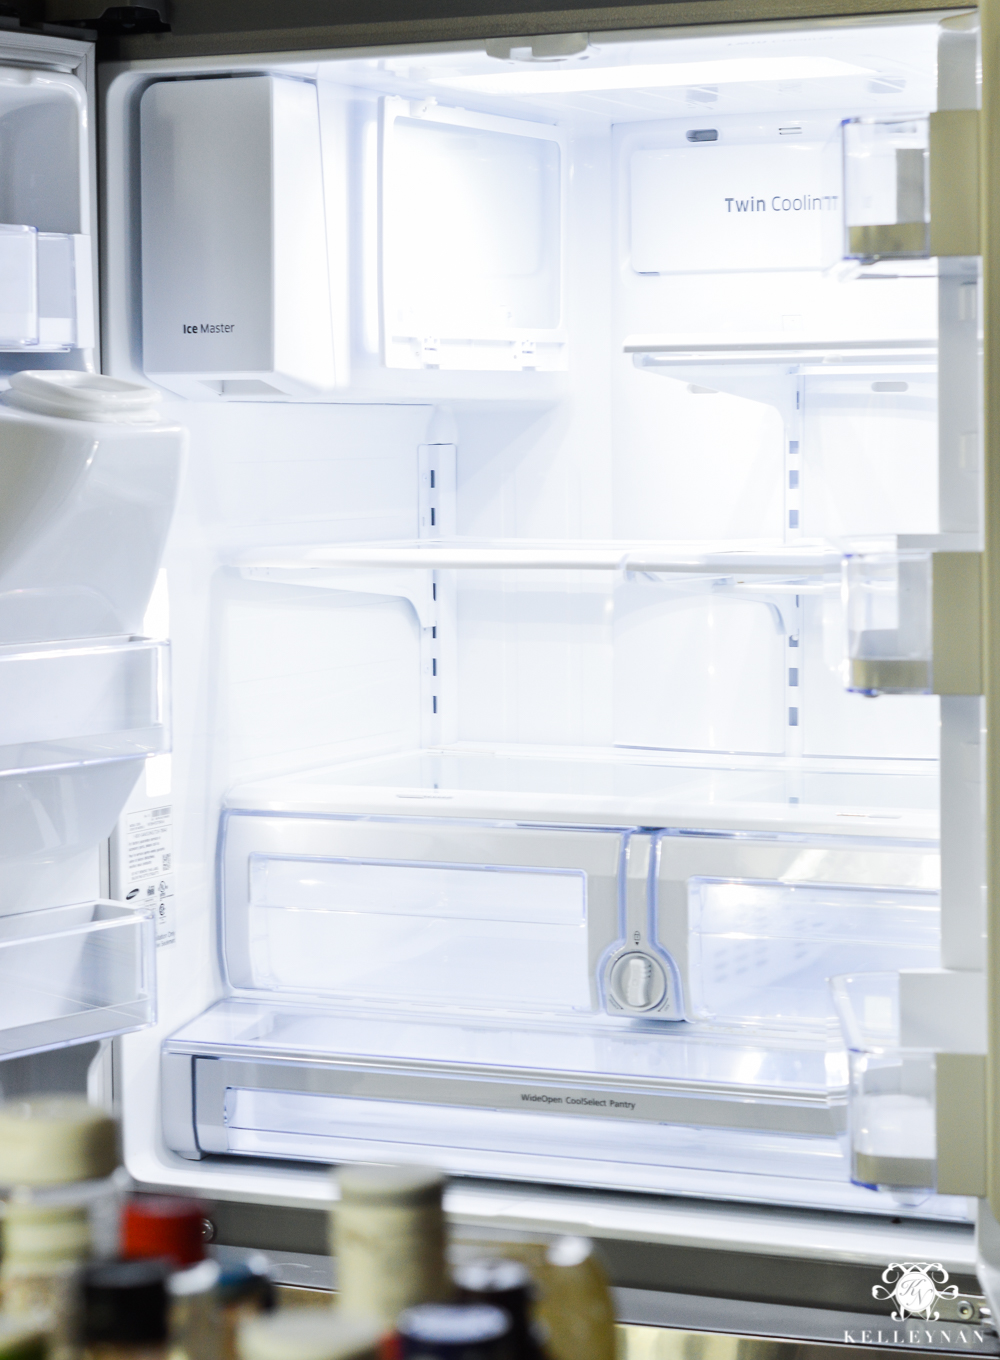 Refrigerator Organization and Best Ways to Organize the Fridge- empty and bare fridge